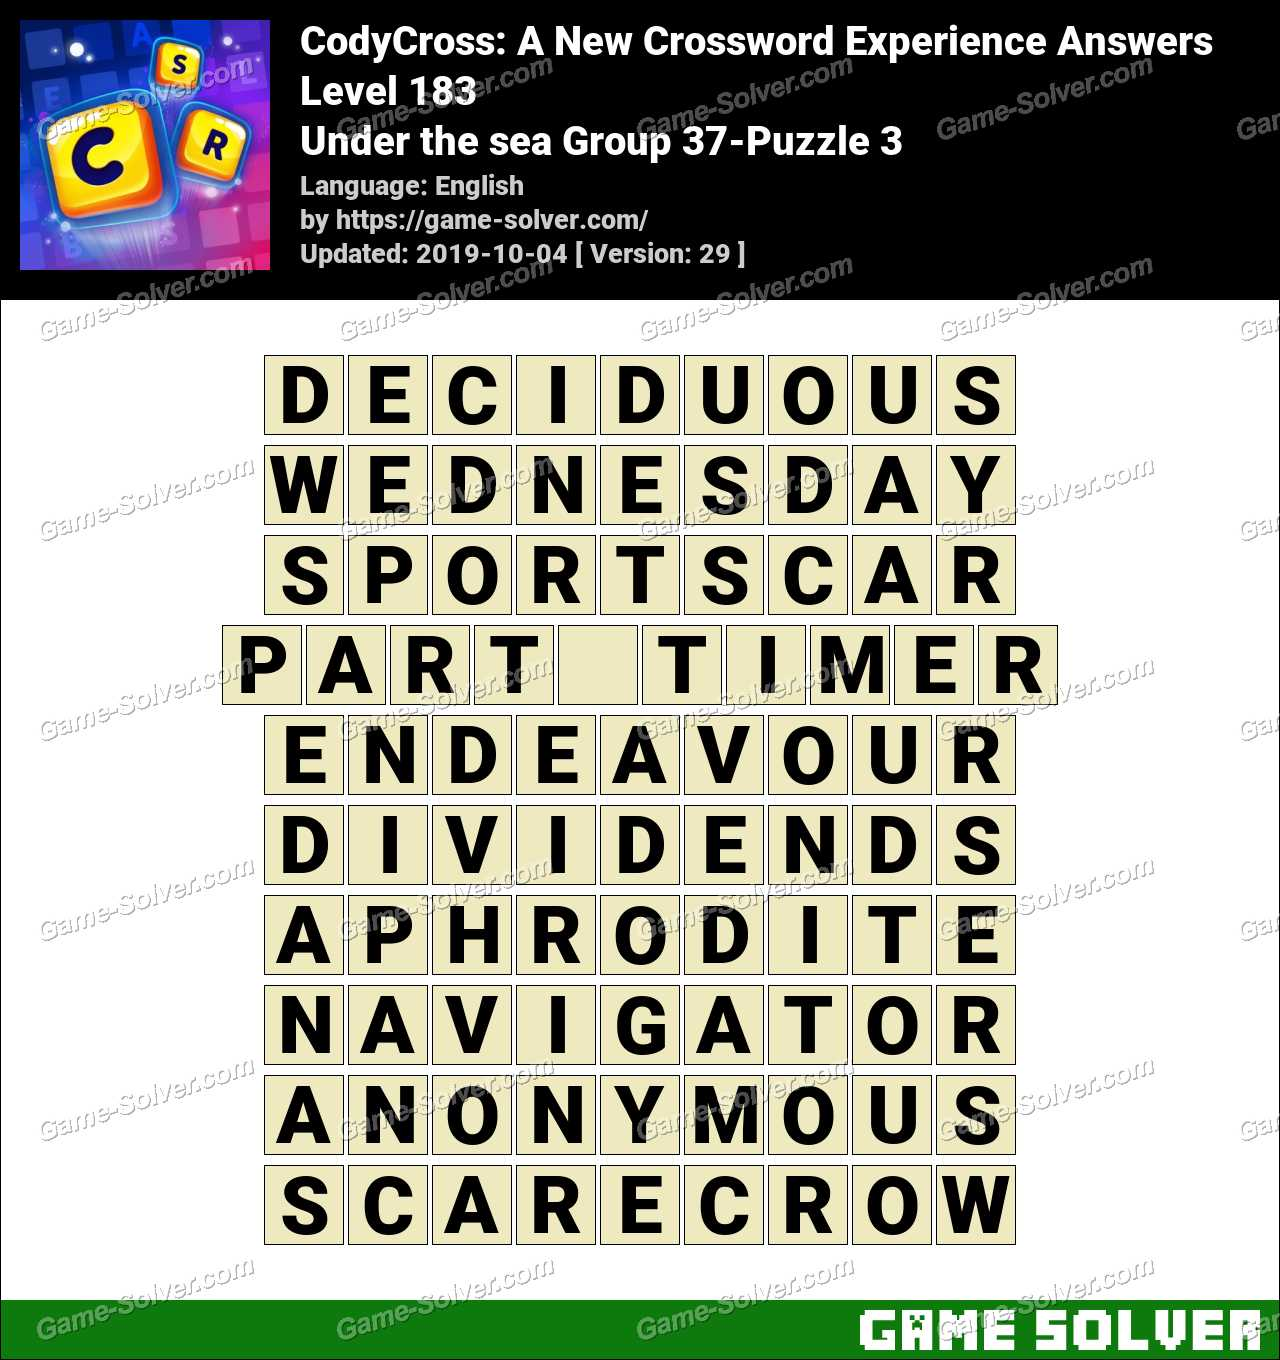 CodyCross Under the sea Group 37-Puzzle 3 Answers